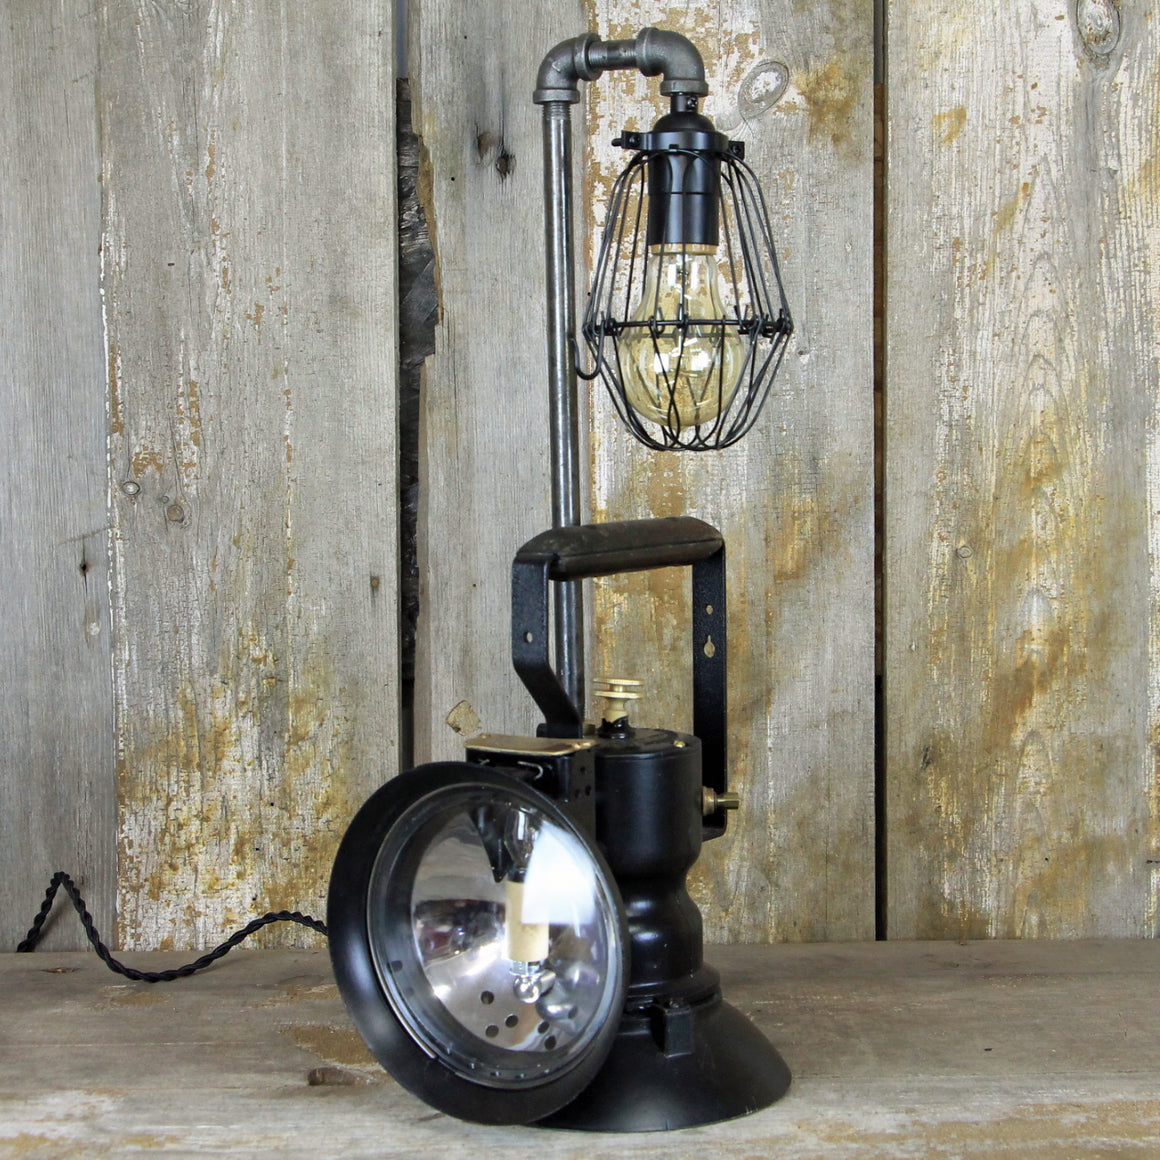 Railroad Lantern, Inspectors Lantern Light, Vintage Railroad Lantern, Antique Railroad Lantern #1918 - The Lighting Works